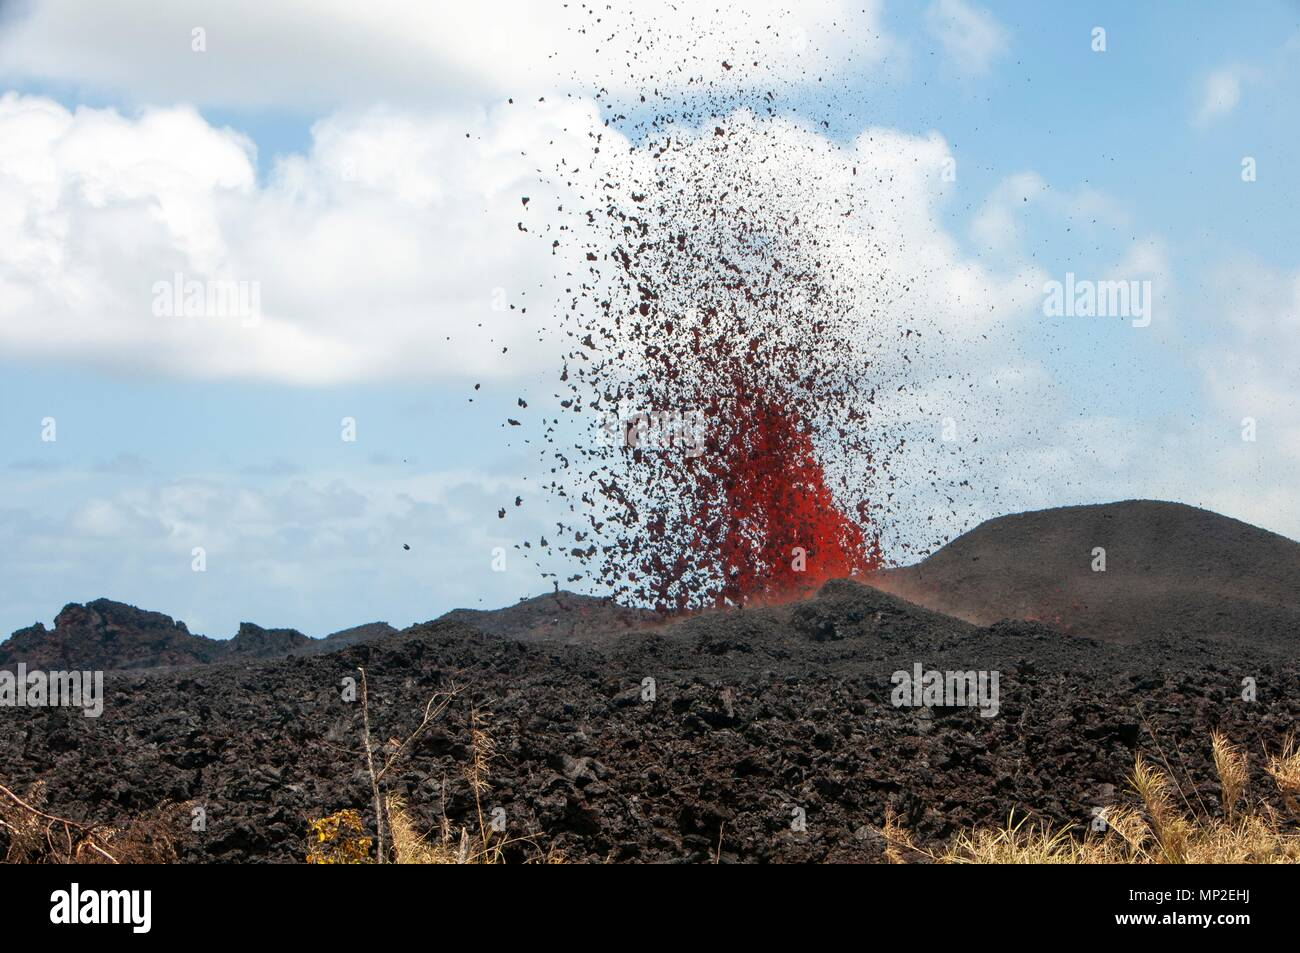 Lava spews out from fissure 17 caused by the eruption of the Kilauea volcano May 18, 2018 in Pahoa, Hawaii.Stock Photo